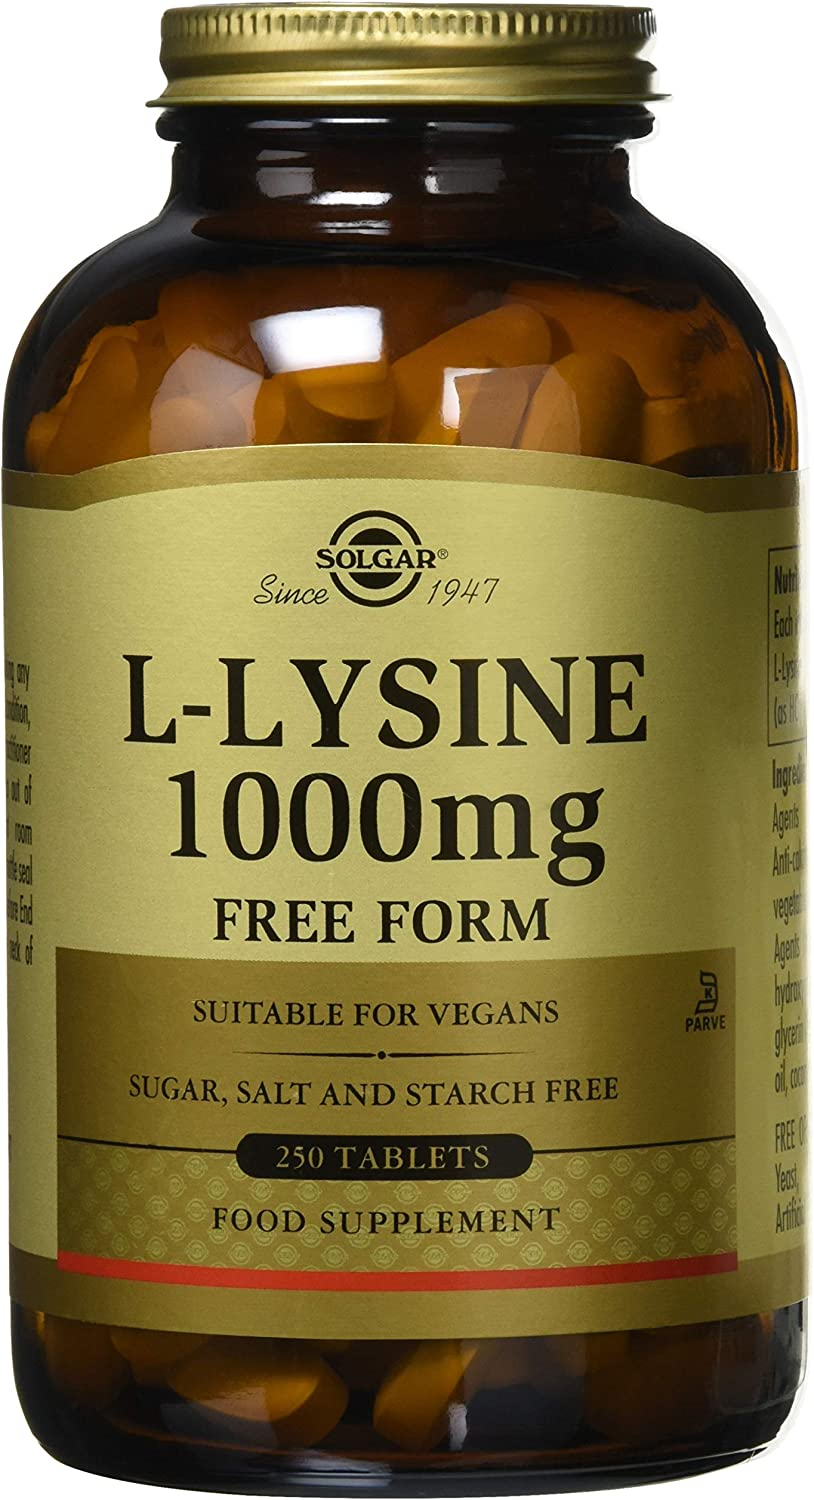 Solgar L-Lysine 1000 mg, 250 Tablets - Enhanced Absorption and Assimilation - Promotes Integrity of Skin and Lips - Collagen Support - Amino Acids - Non-GMO, Vegan, Gluten Free - 250 Servings: Health & Personal Care